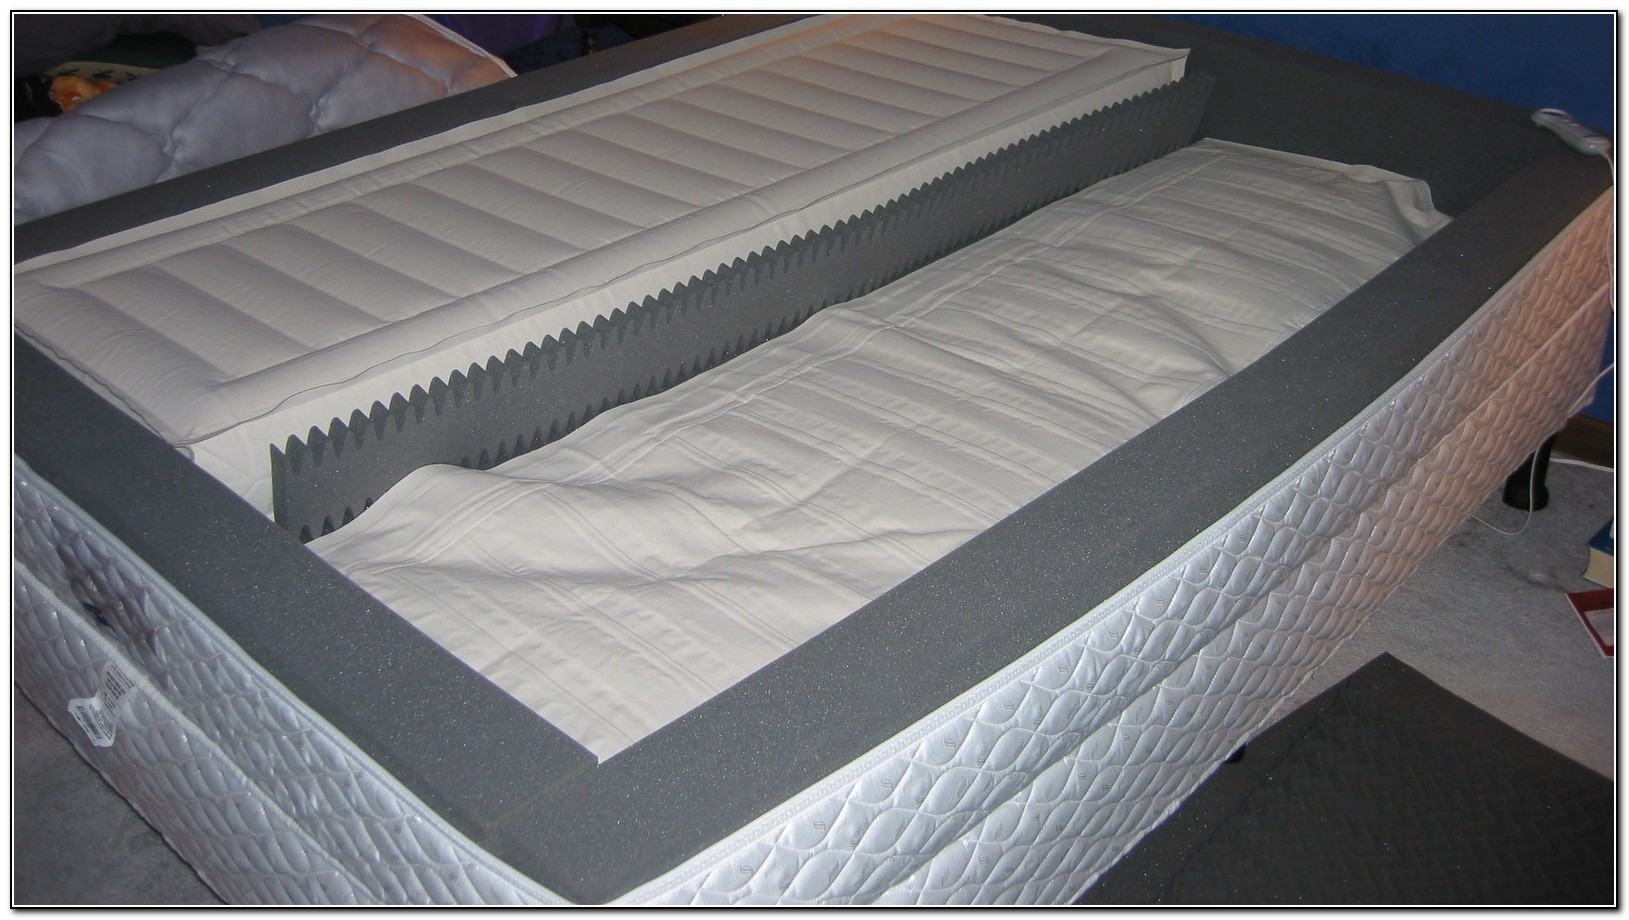 Sleep Number Beds And Mold